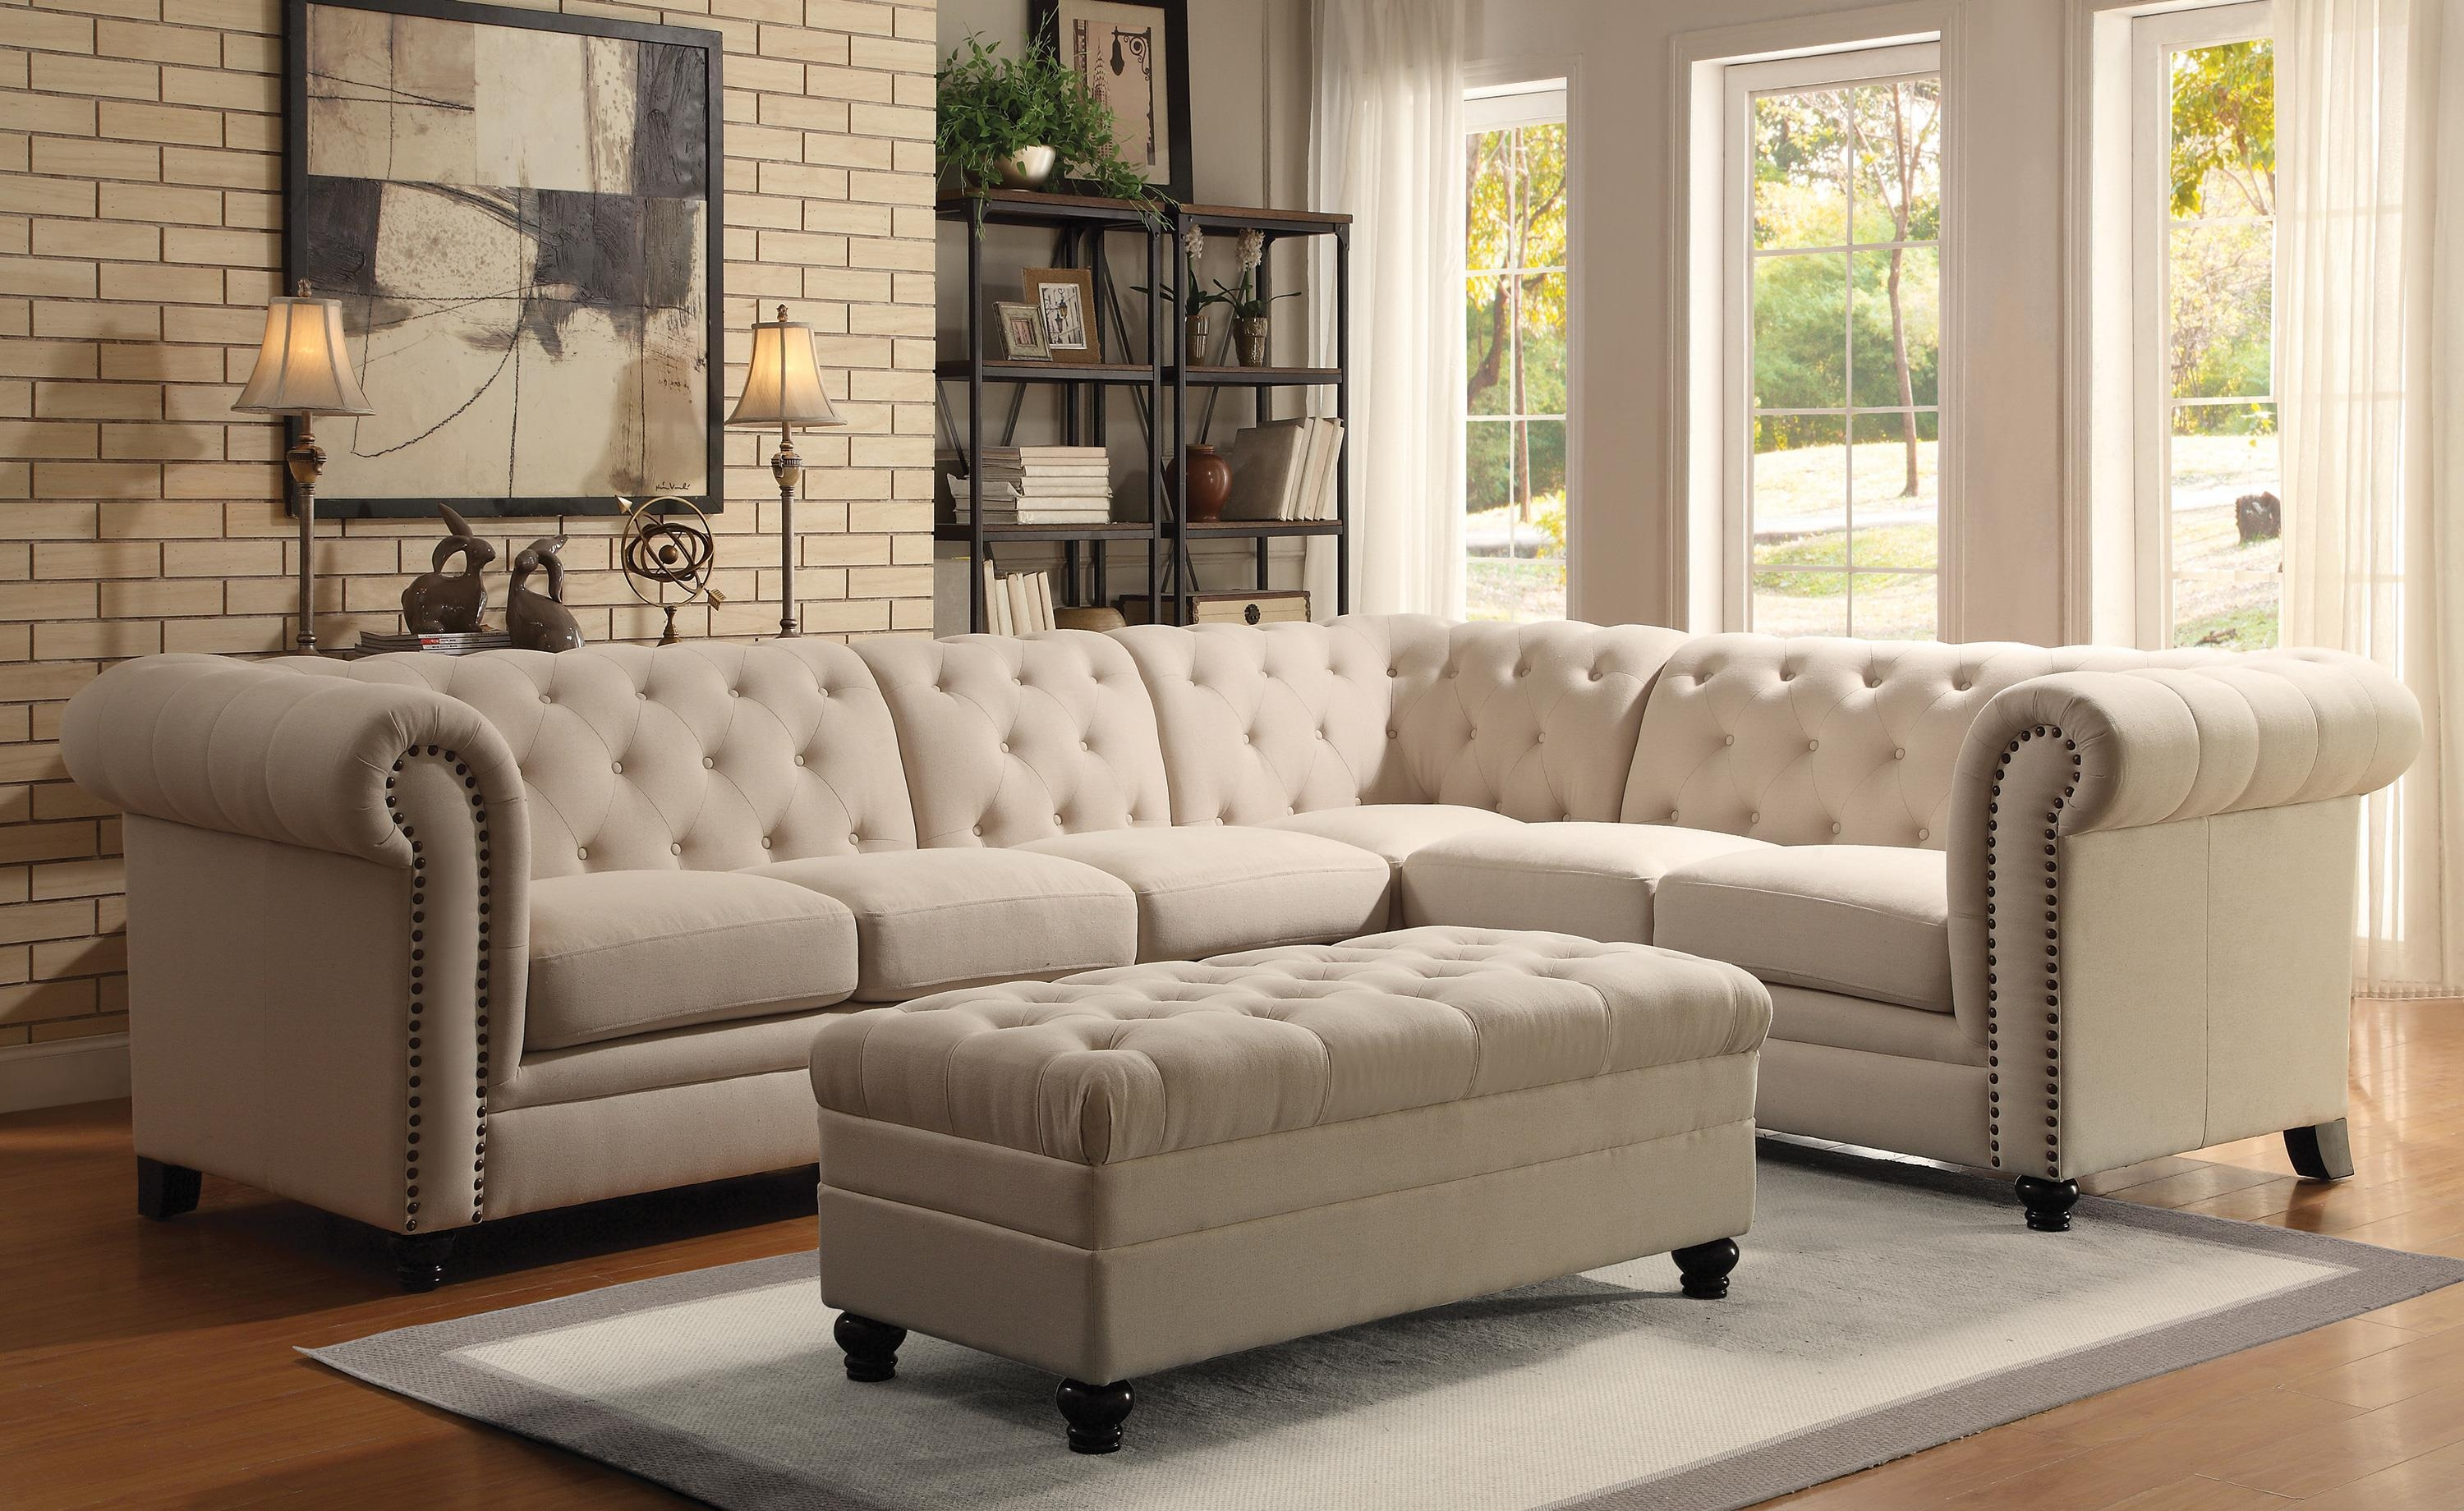 Sofa: Sectional Sleeper | Tufted Sectional Sofa | Tufted Sectional Within Tufted Sectional Sofa Chaise (View 7 of 20)